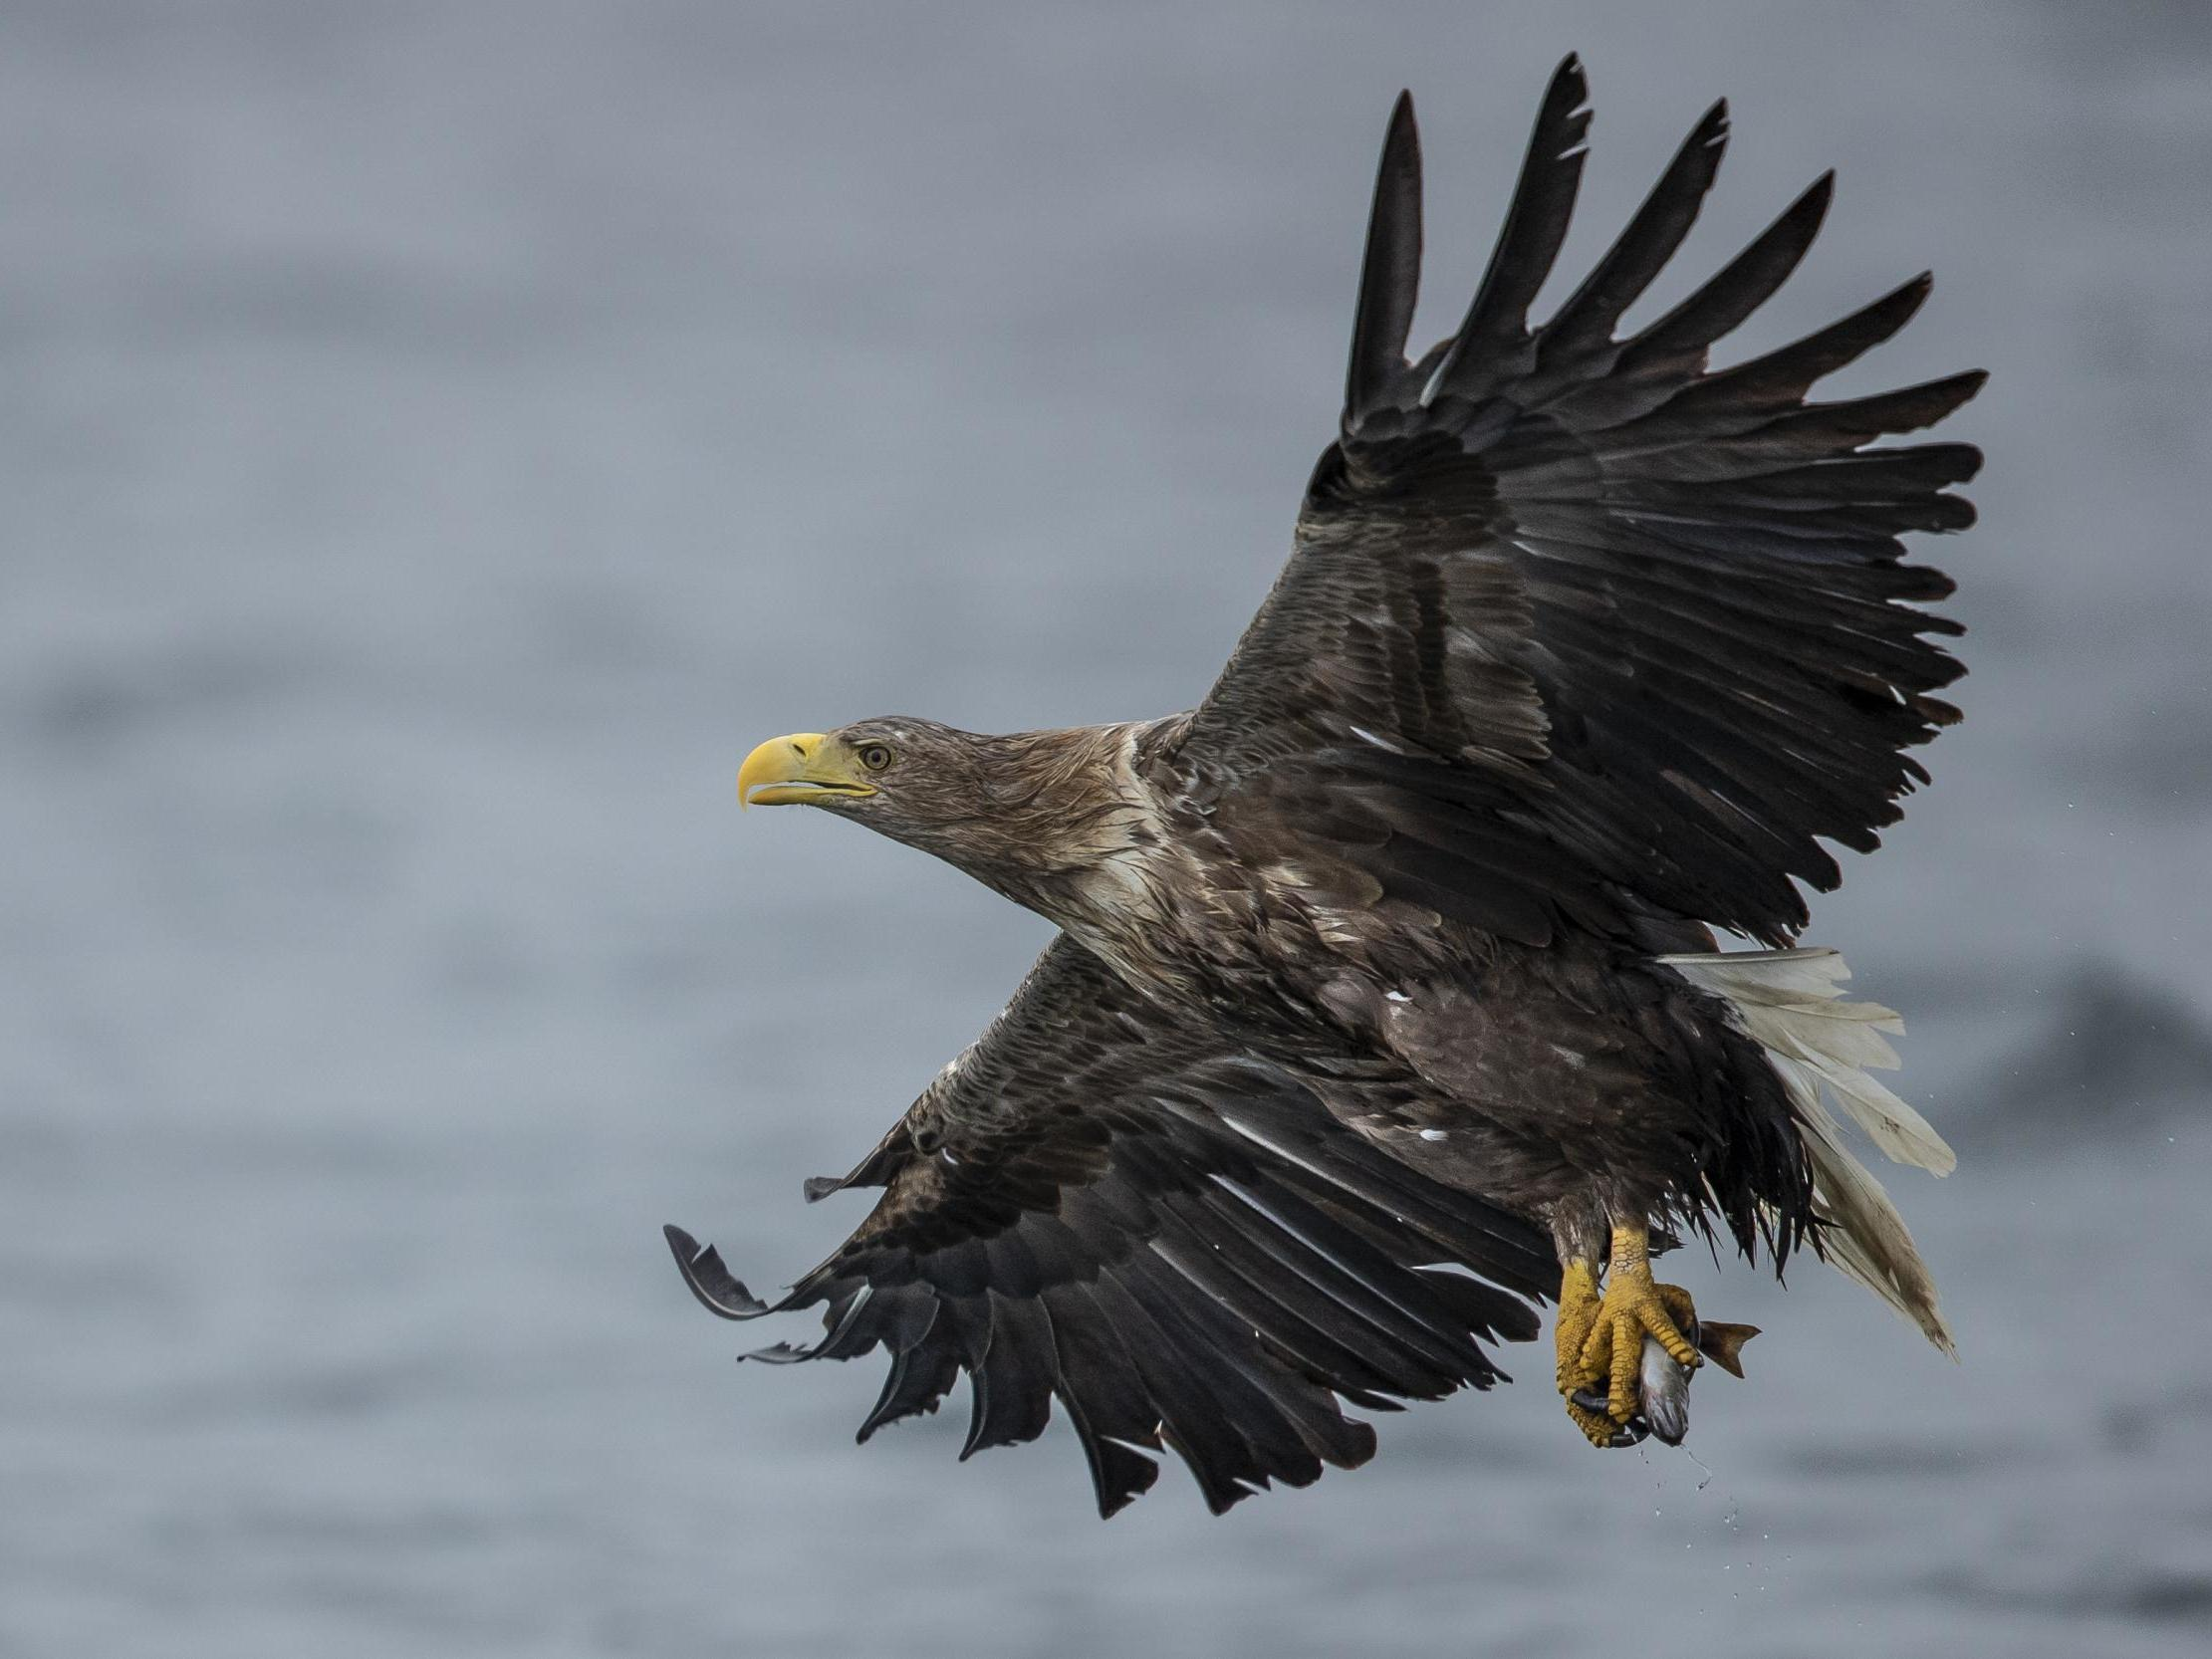 Uk S Largest Bird Of Prey Returns To England For First Time In 240 Years The Independent The Independent